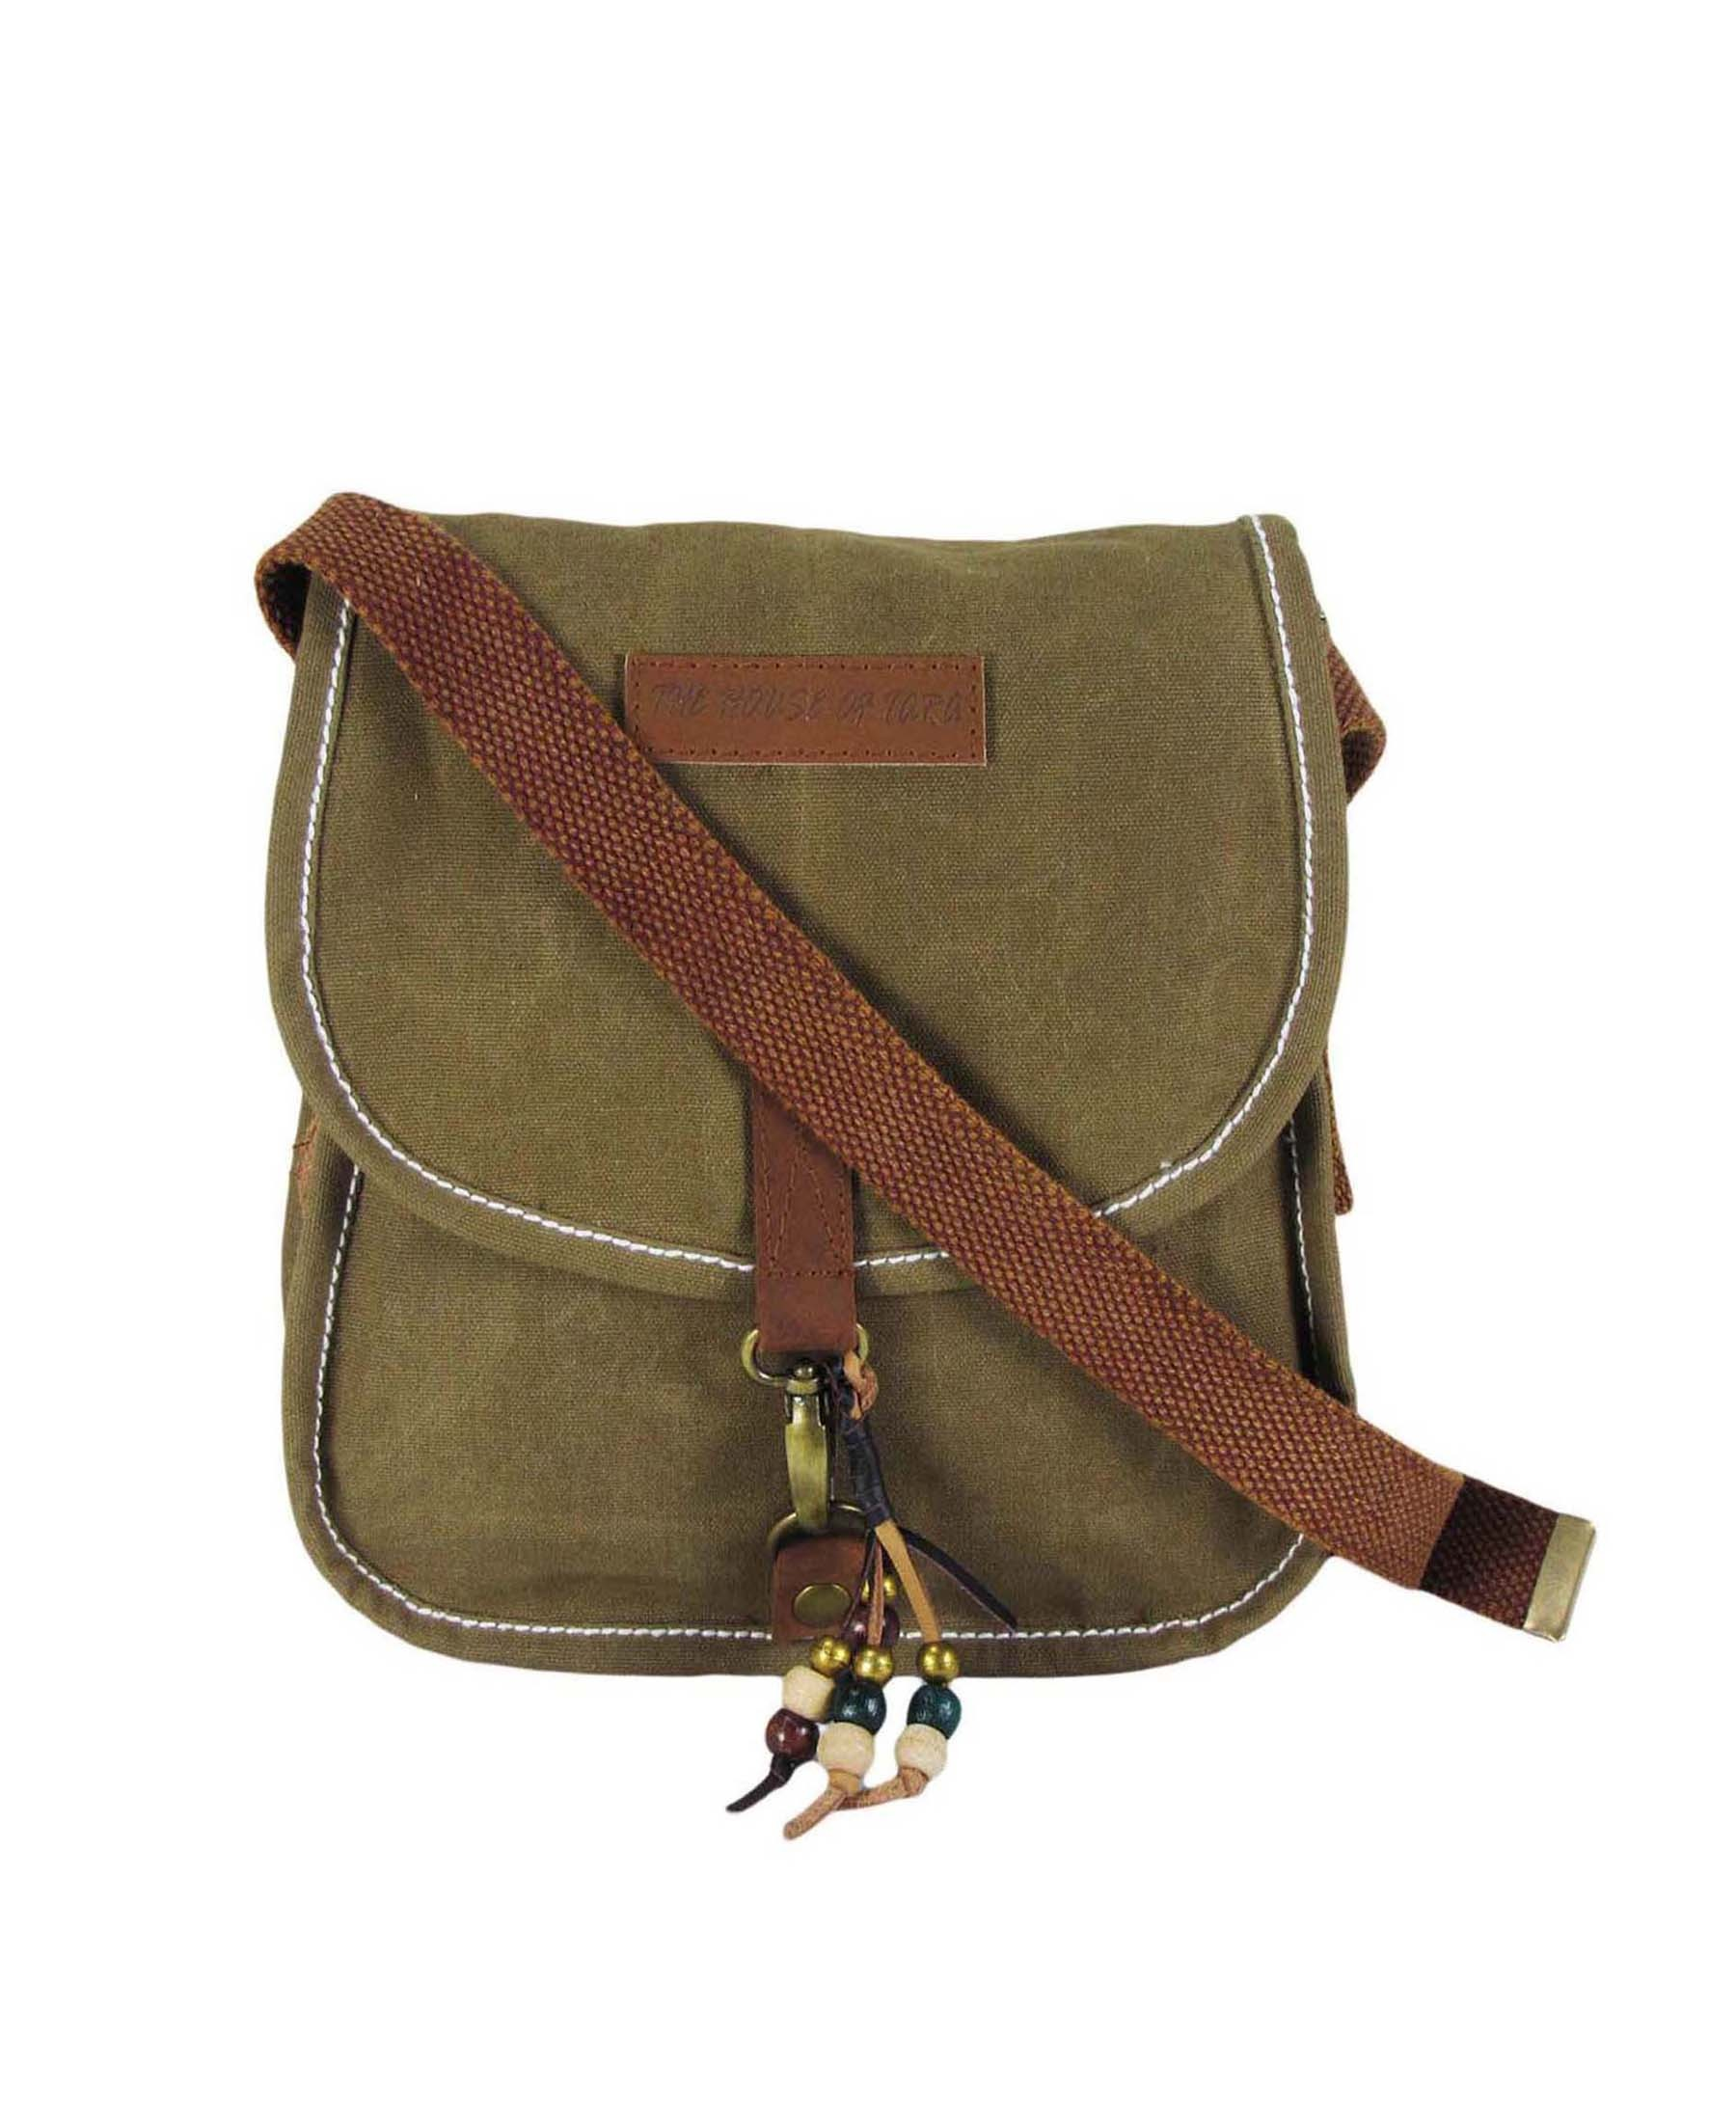 3729a0125884 The House of Tara Women Khaki Canvas Sling Bag